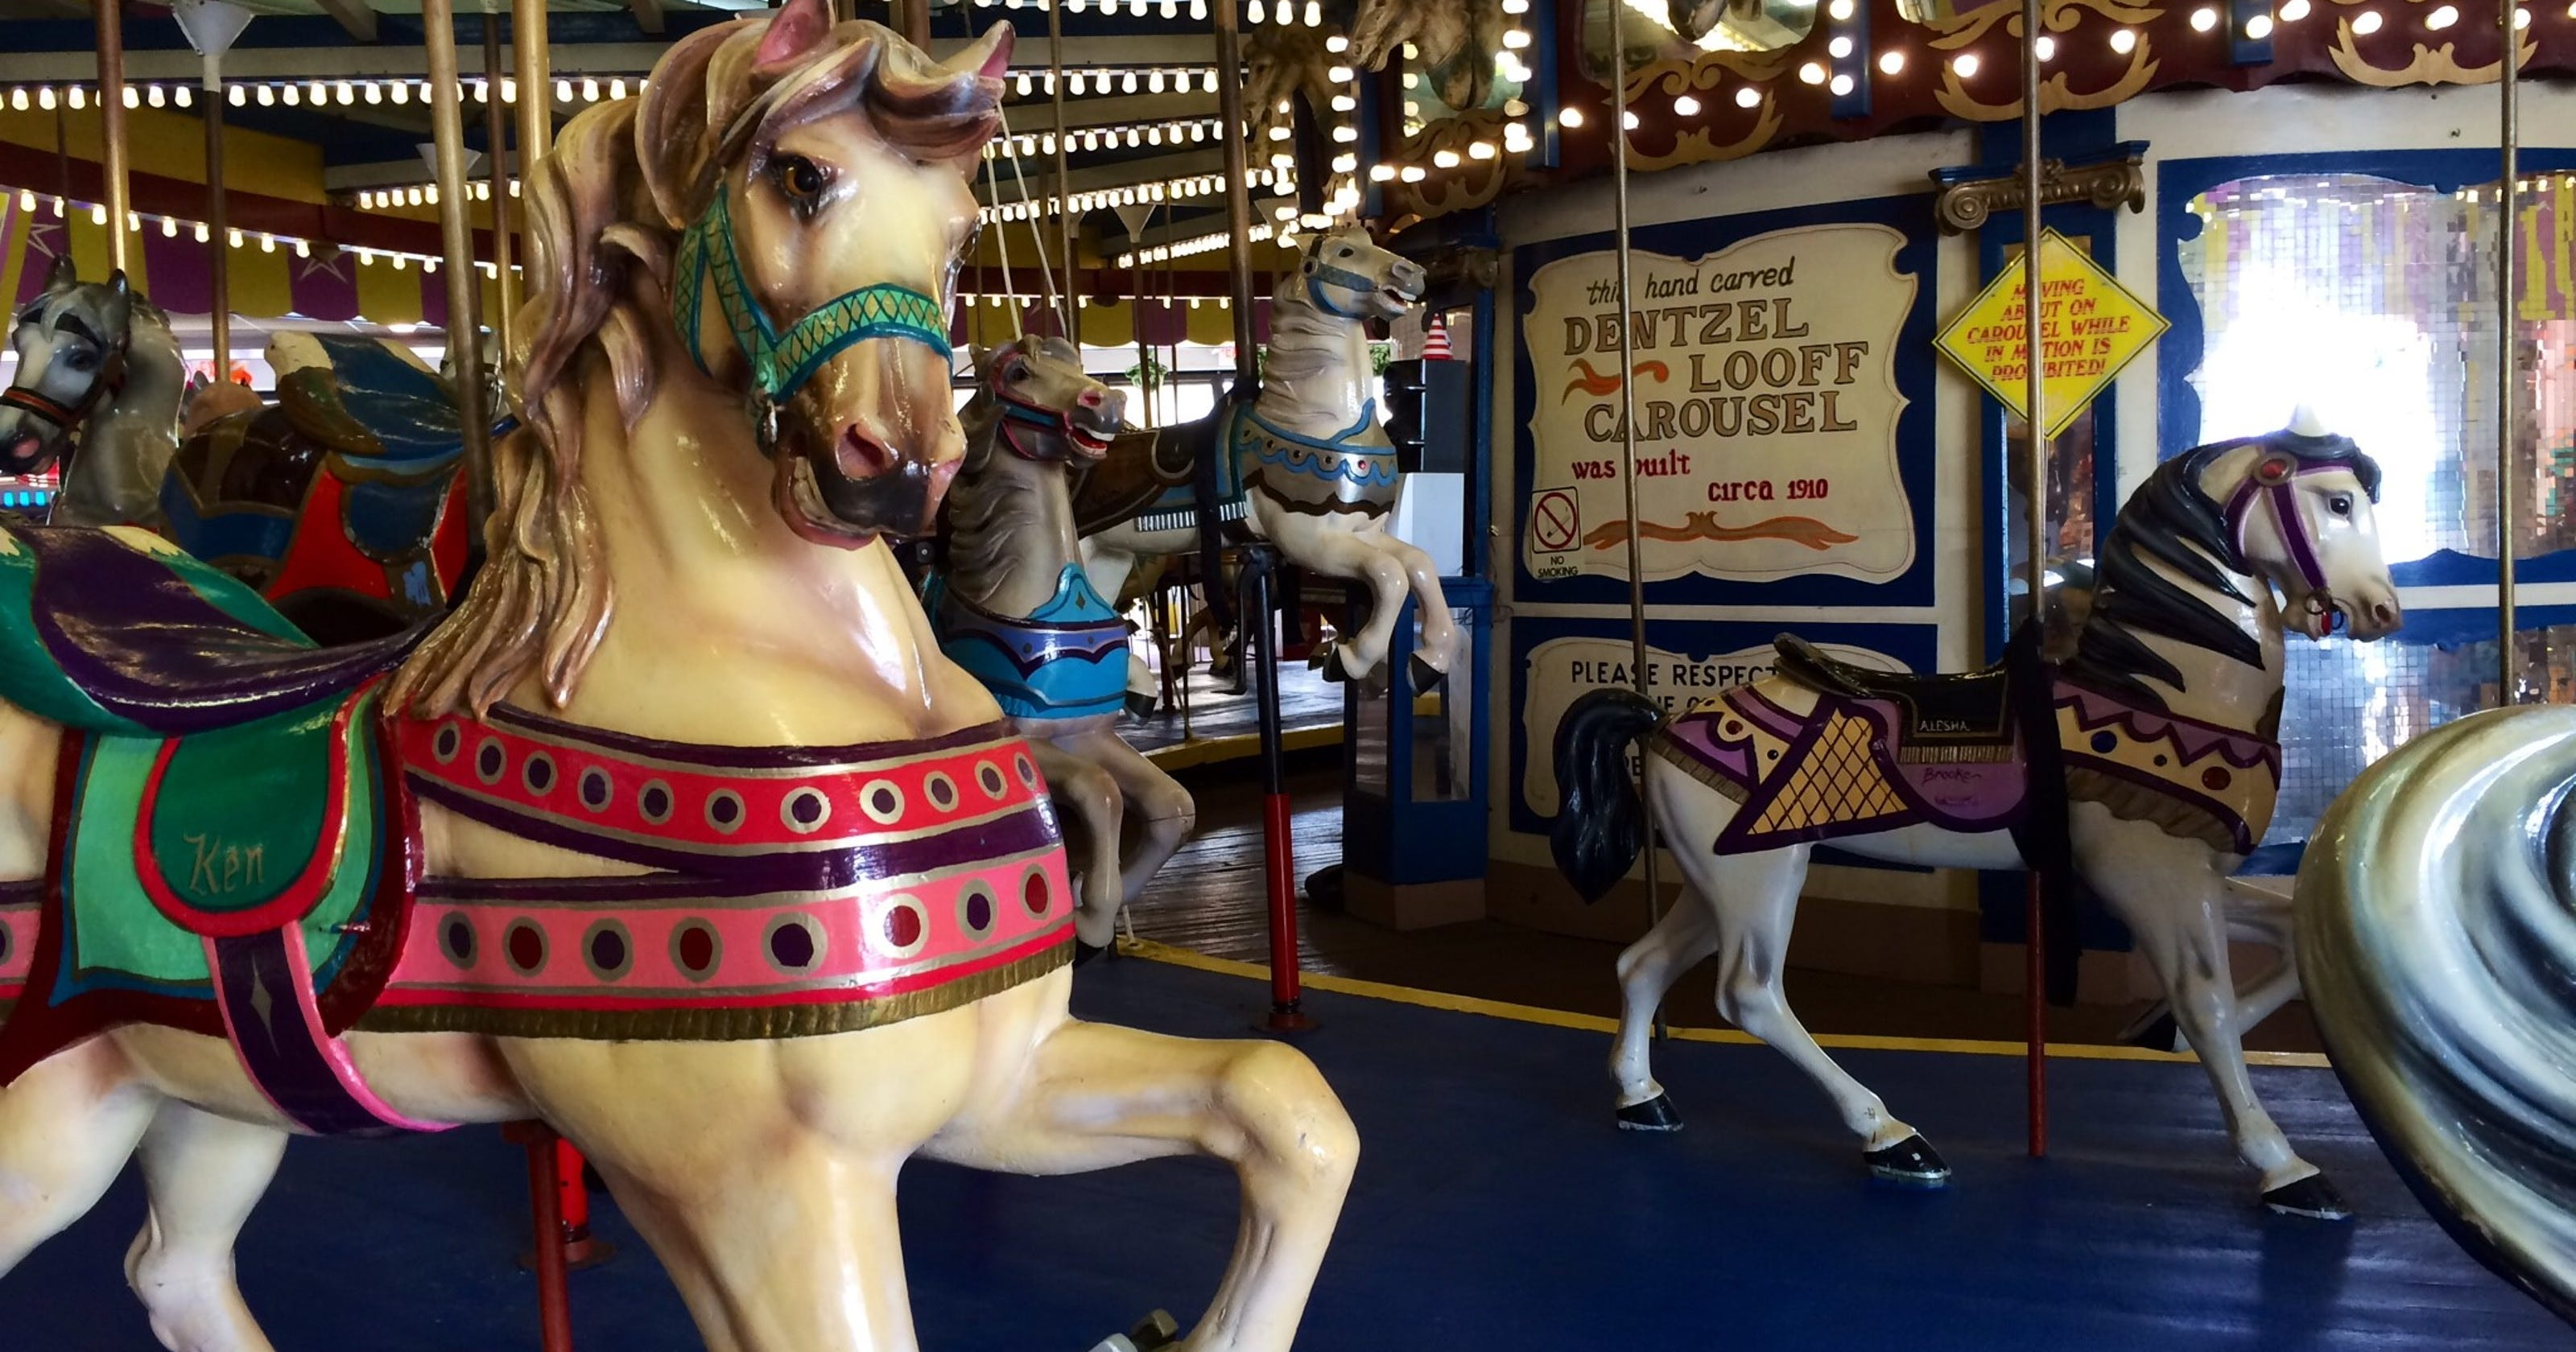 Seaside Heights now owns 1910 carousel at Casino Pier